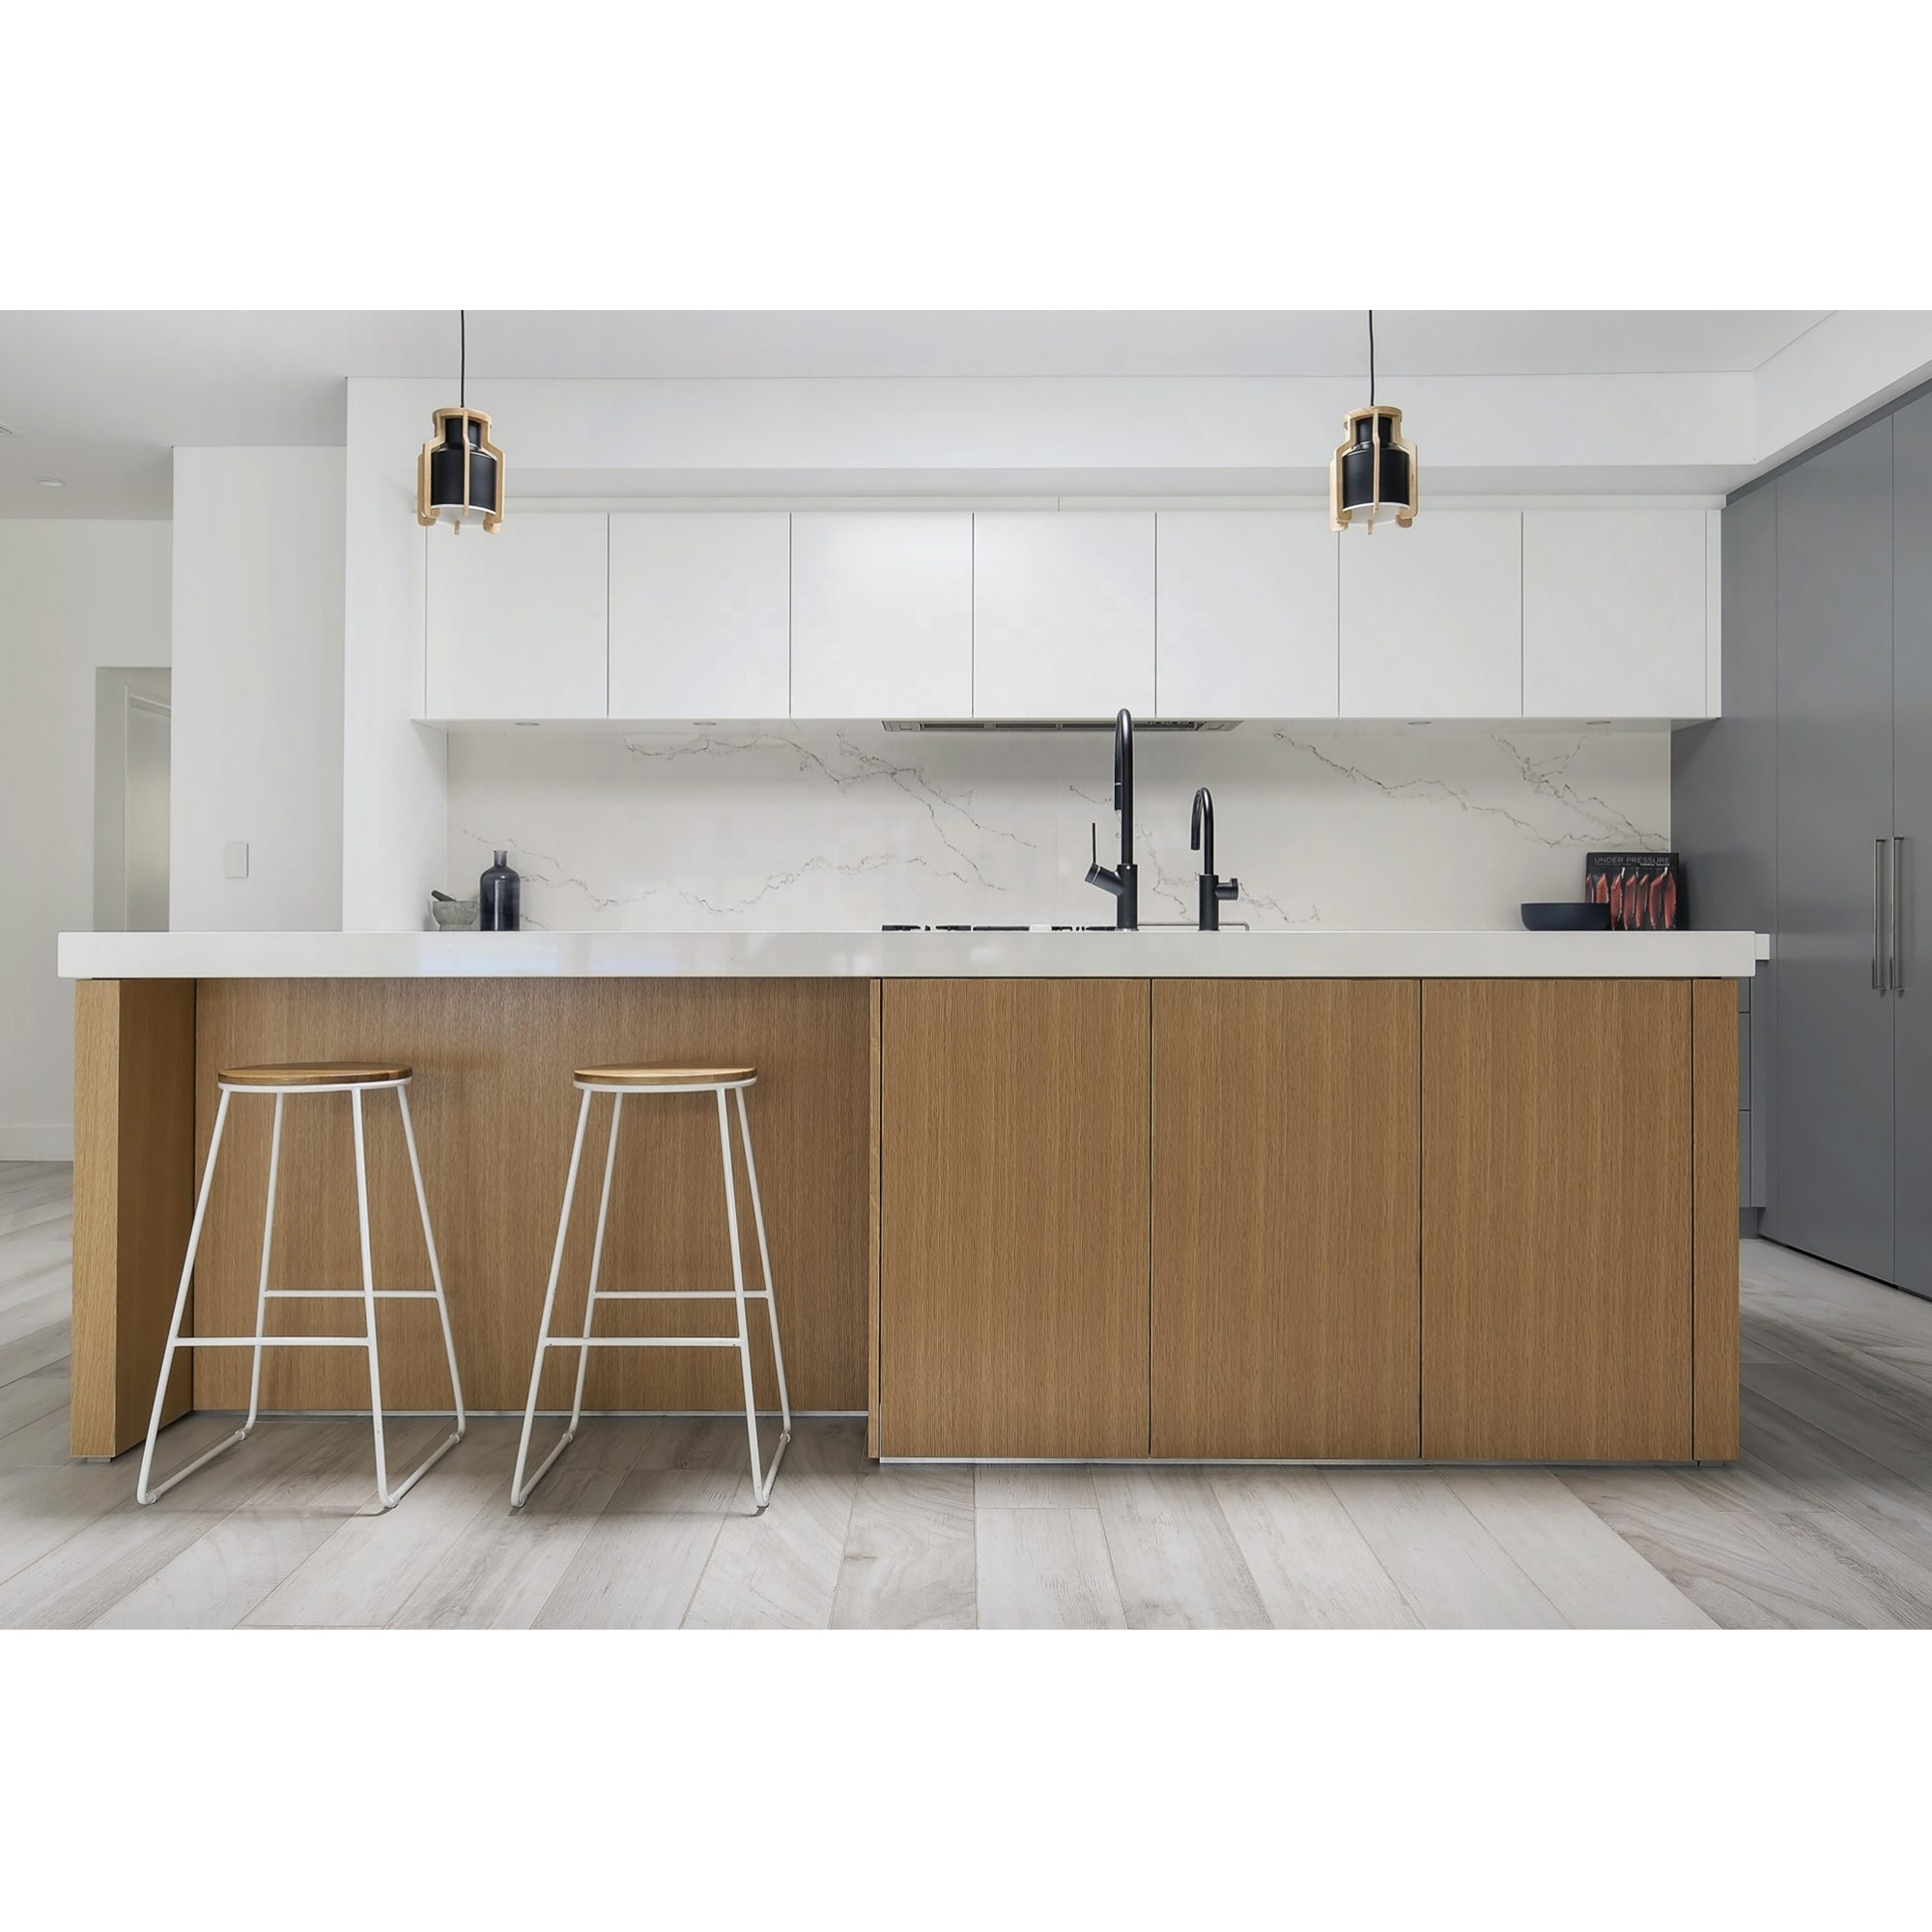 Nicocabinet Factory Direct Sale Modern Laminate Sheet Kitchen Cabinets Modular Kitchen Cupboards Furniture Buy French Kitchen Import Kitchen Cabinet Fitted Kitchens China Kitchens Flat Pack Cabinet Kitchen Cabin Kitchen Cabinet White Kitchen